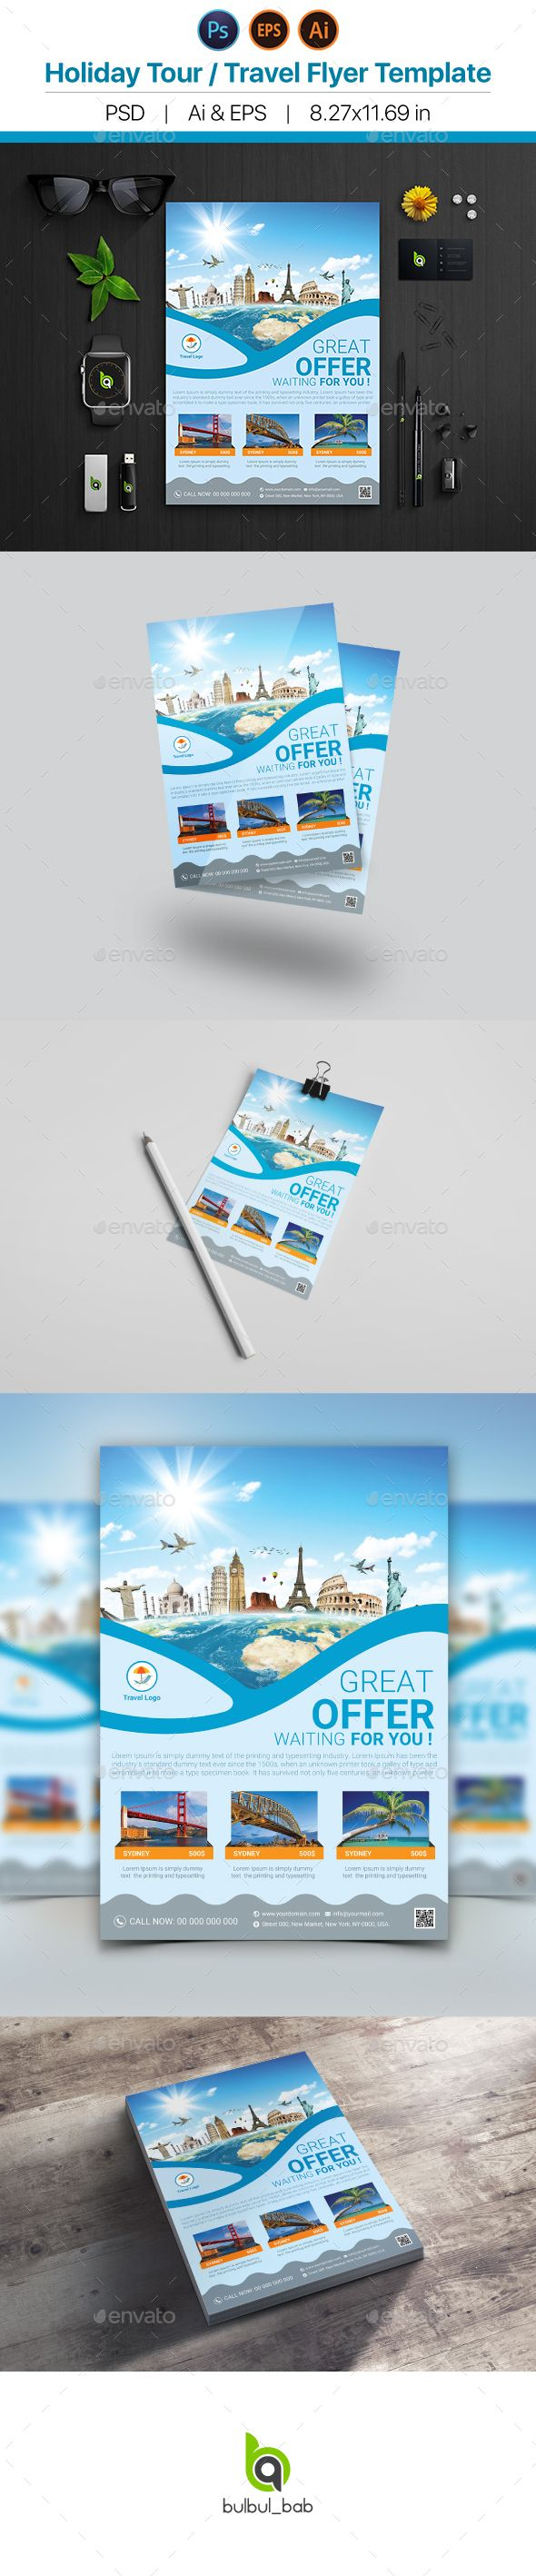 Holiday Travel Tour Flyer Template 290